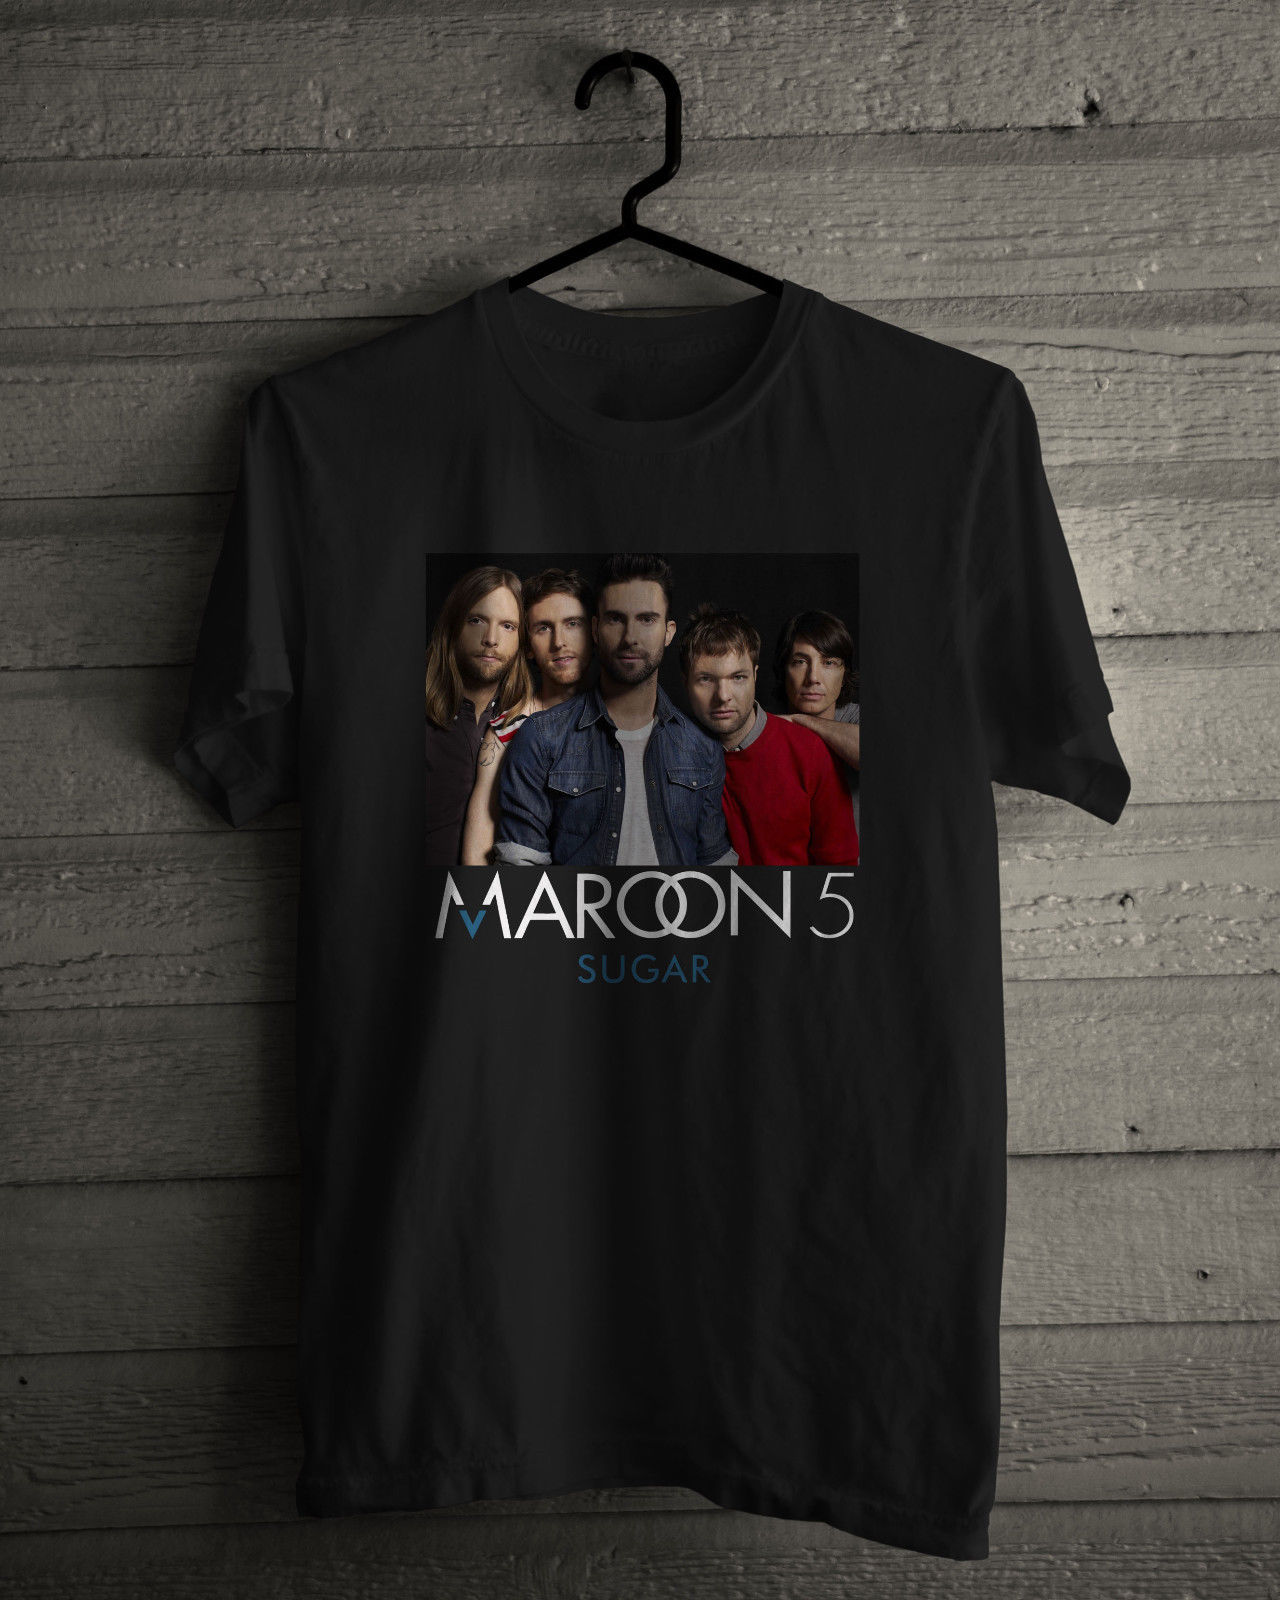 Maroon 5 T-Shirt, AKA Karas Flowers, American pop rock band, Sugar Black Tee Top Tee 100% Cotton Humor Men Crewneck Tee Shirts